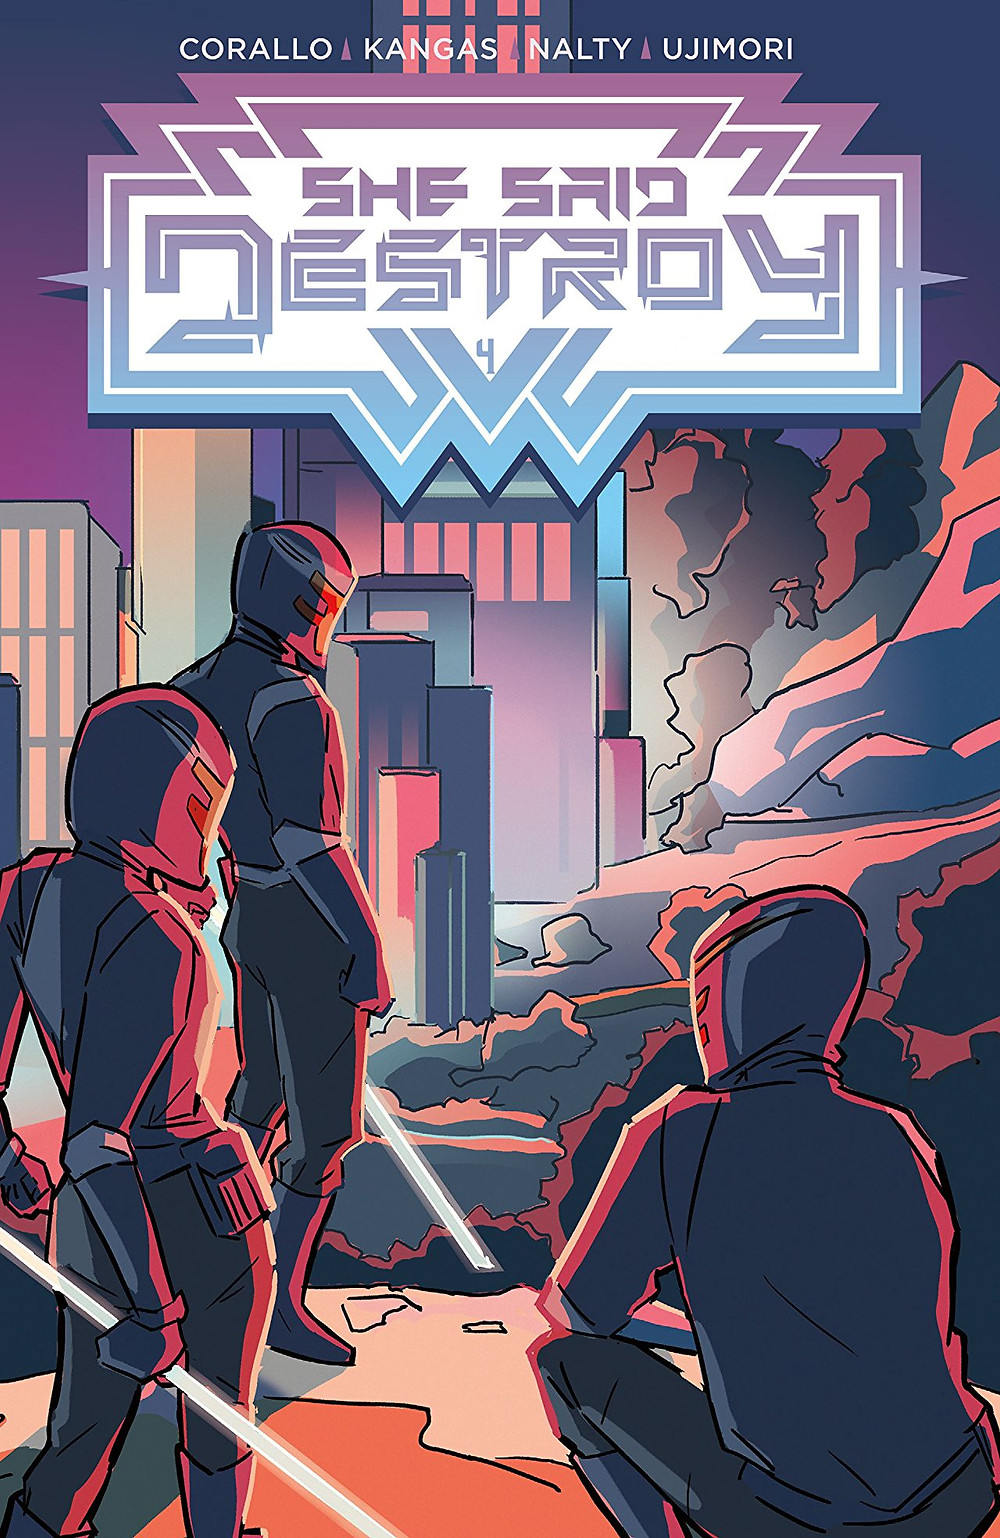 She Said Destroy, Issue #4, cover, Vault Comics, Corallo/Kangas